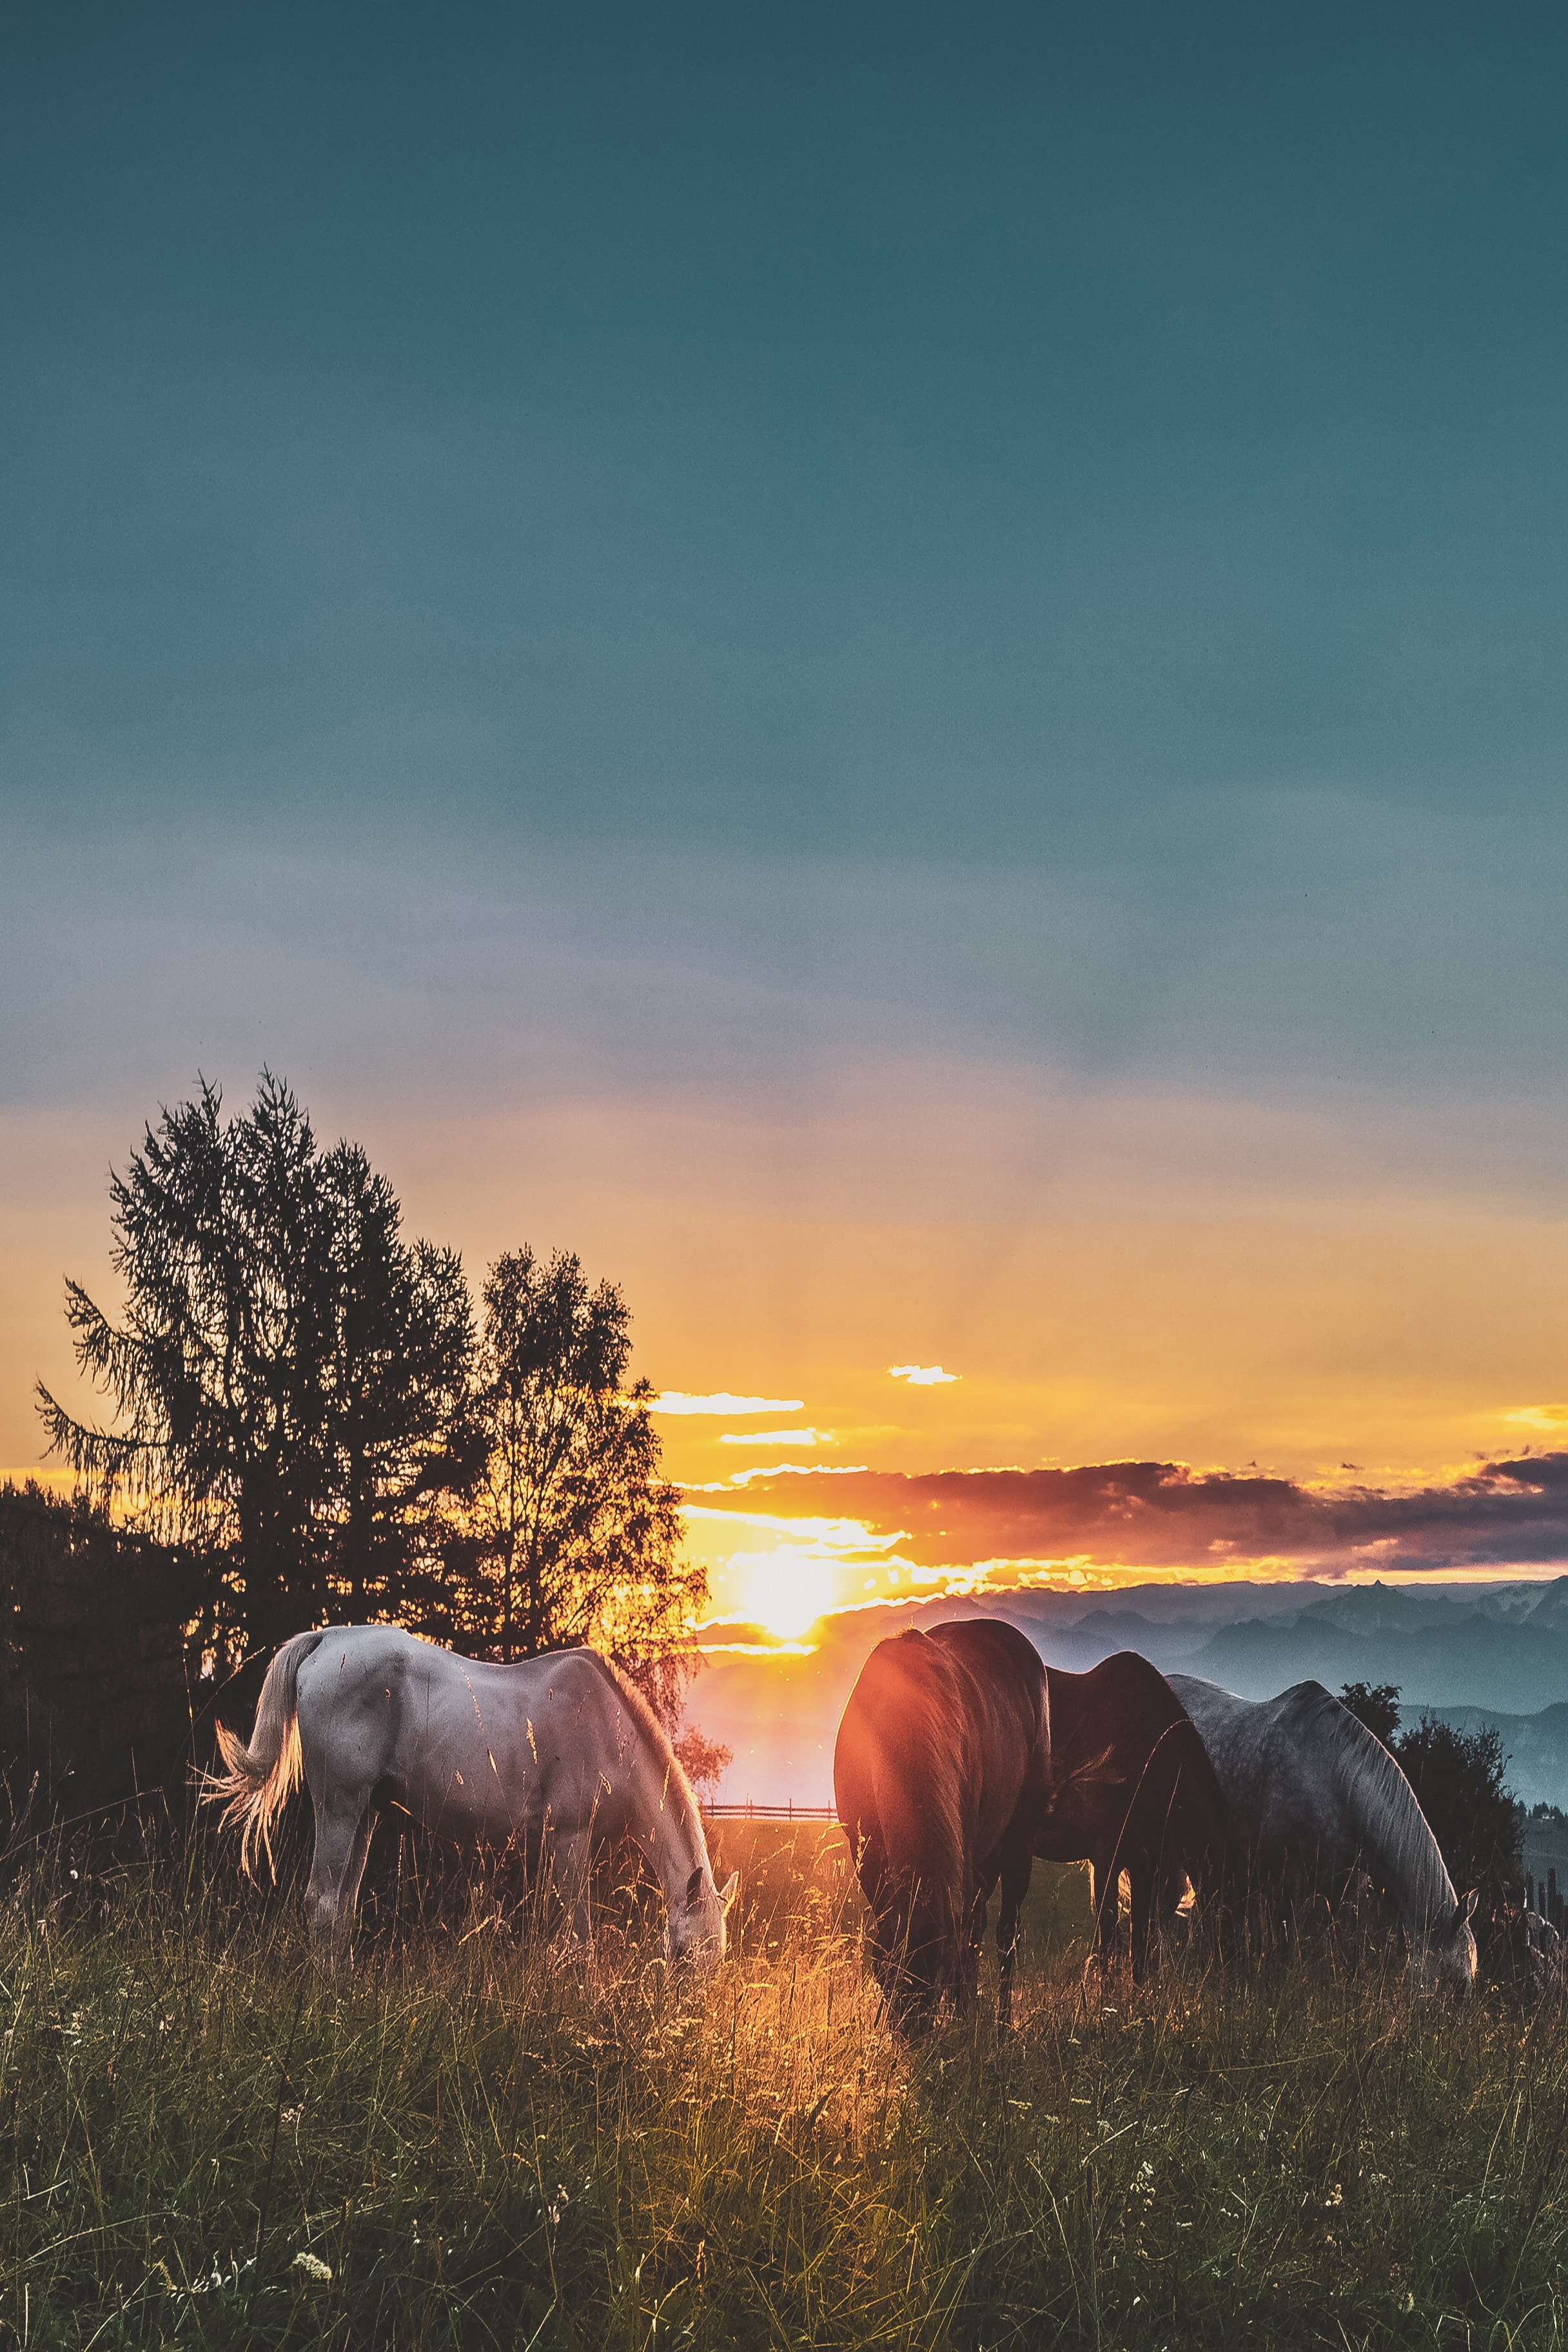 117546 download wallpaper Animals, Sunset, Horses, Stroll, Paddock screensavers and pictures for free